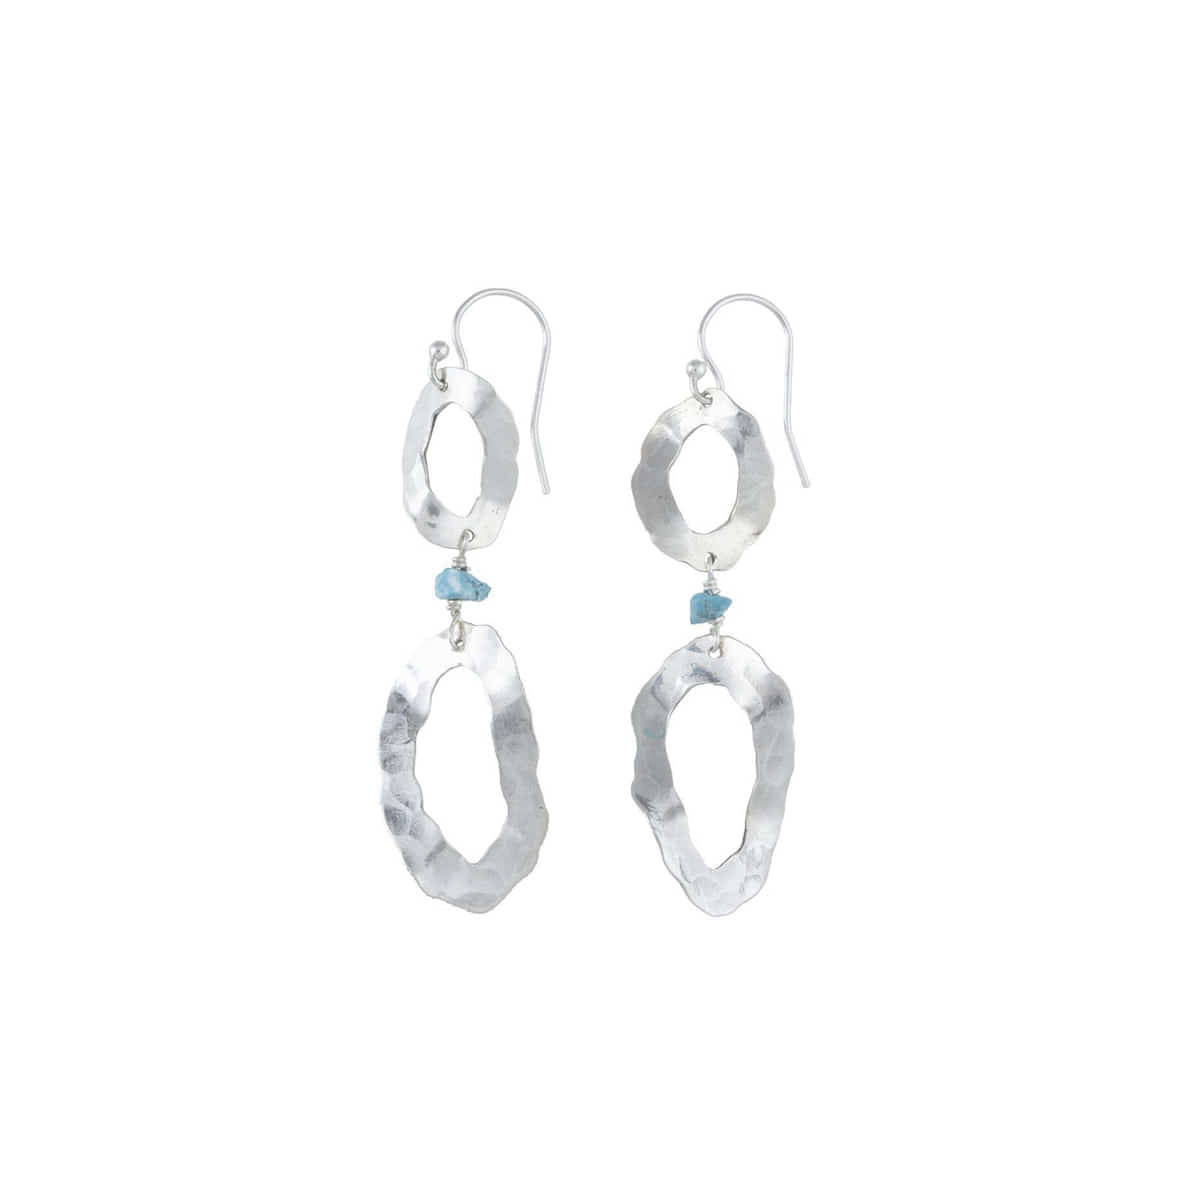 [NORTH WORKS] EARRING 'H-012'